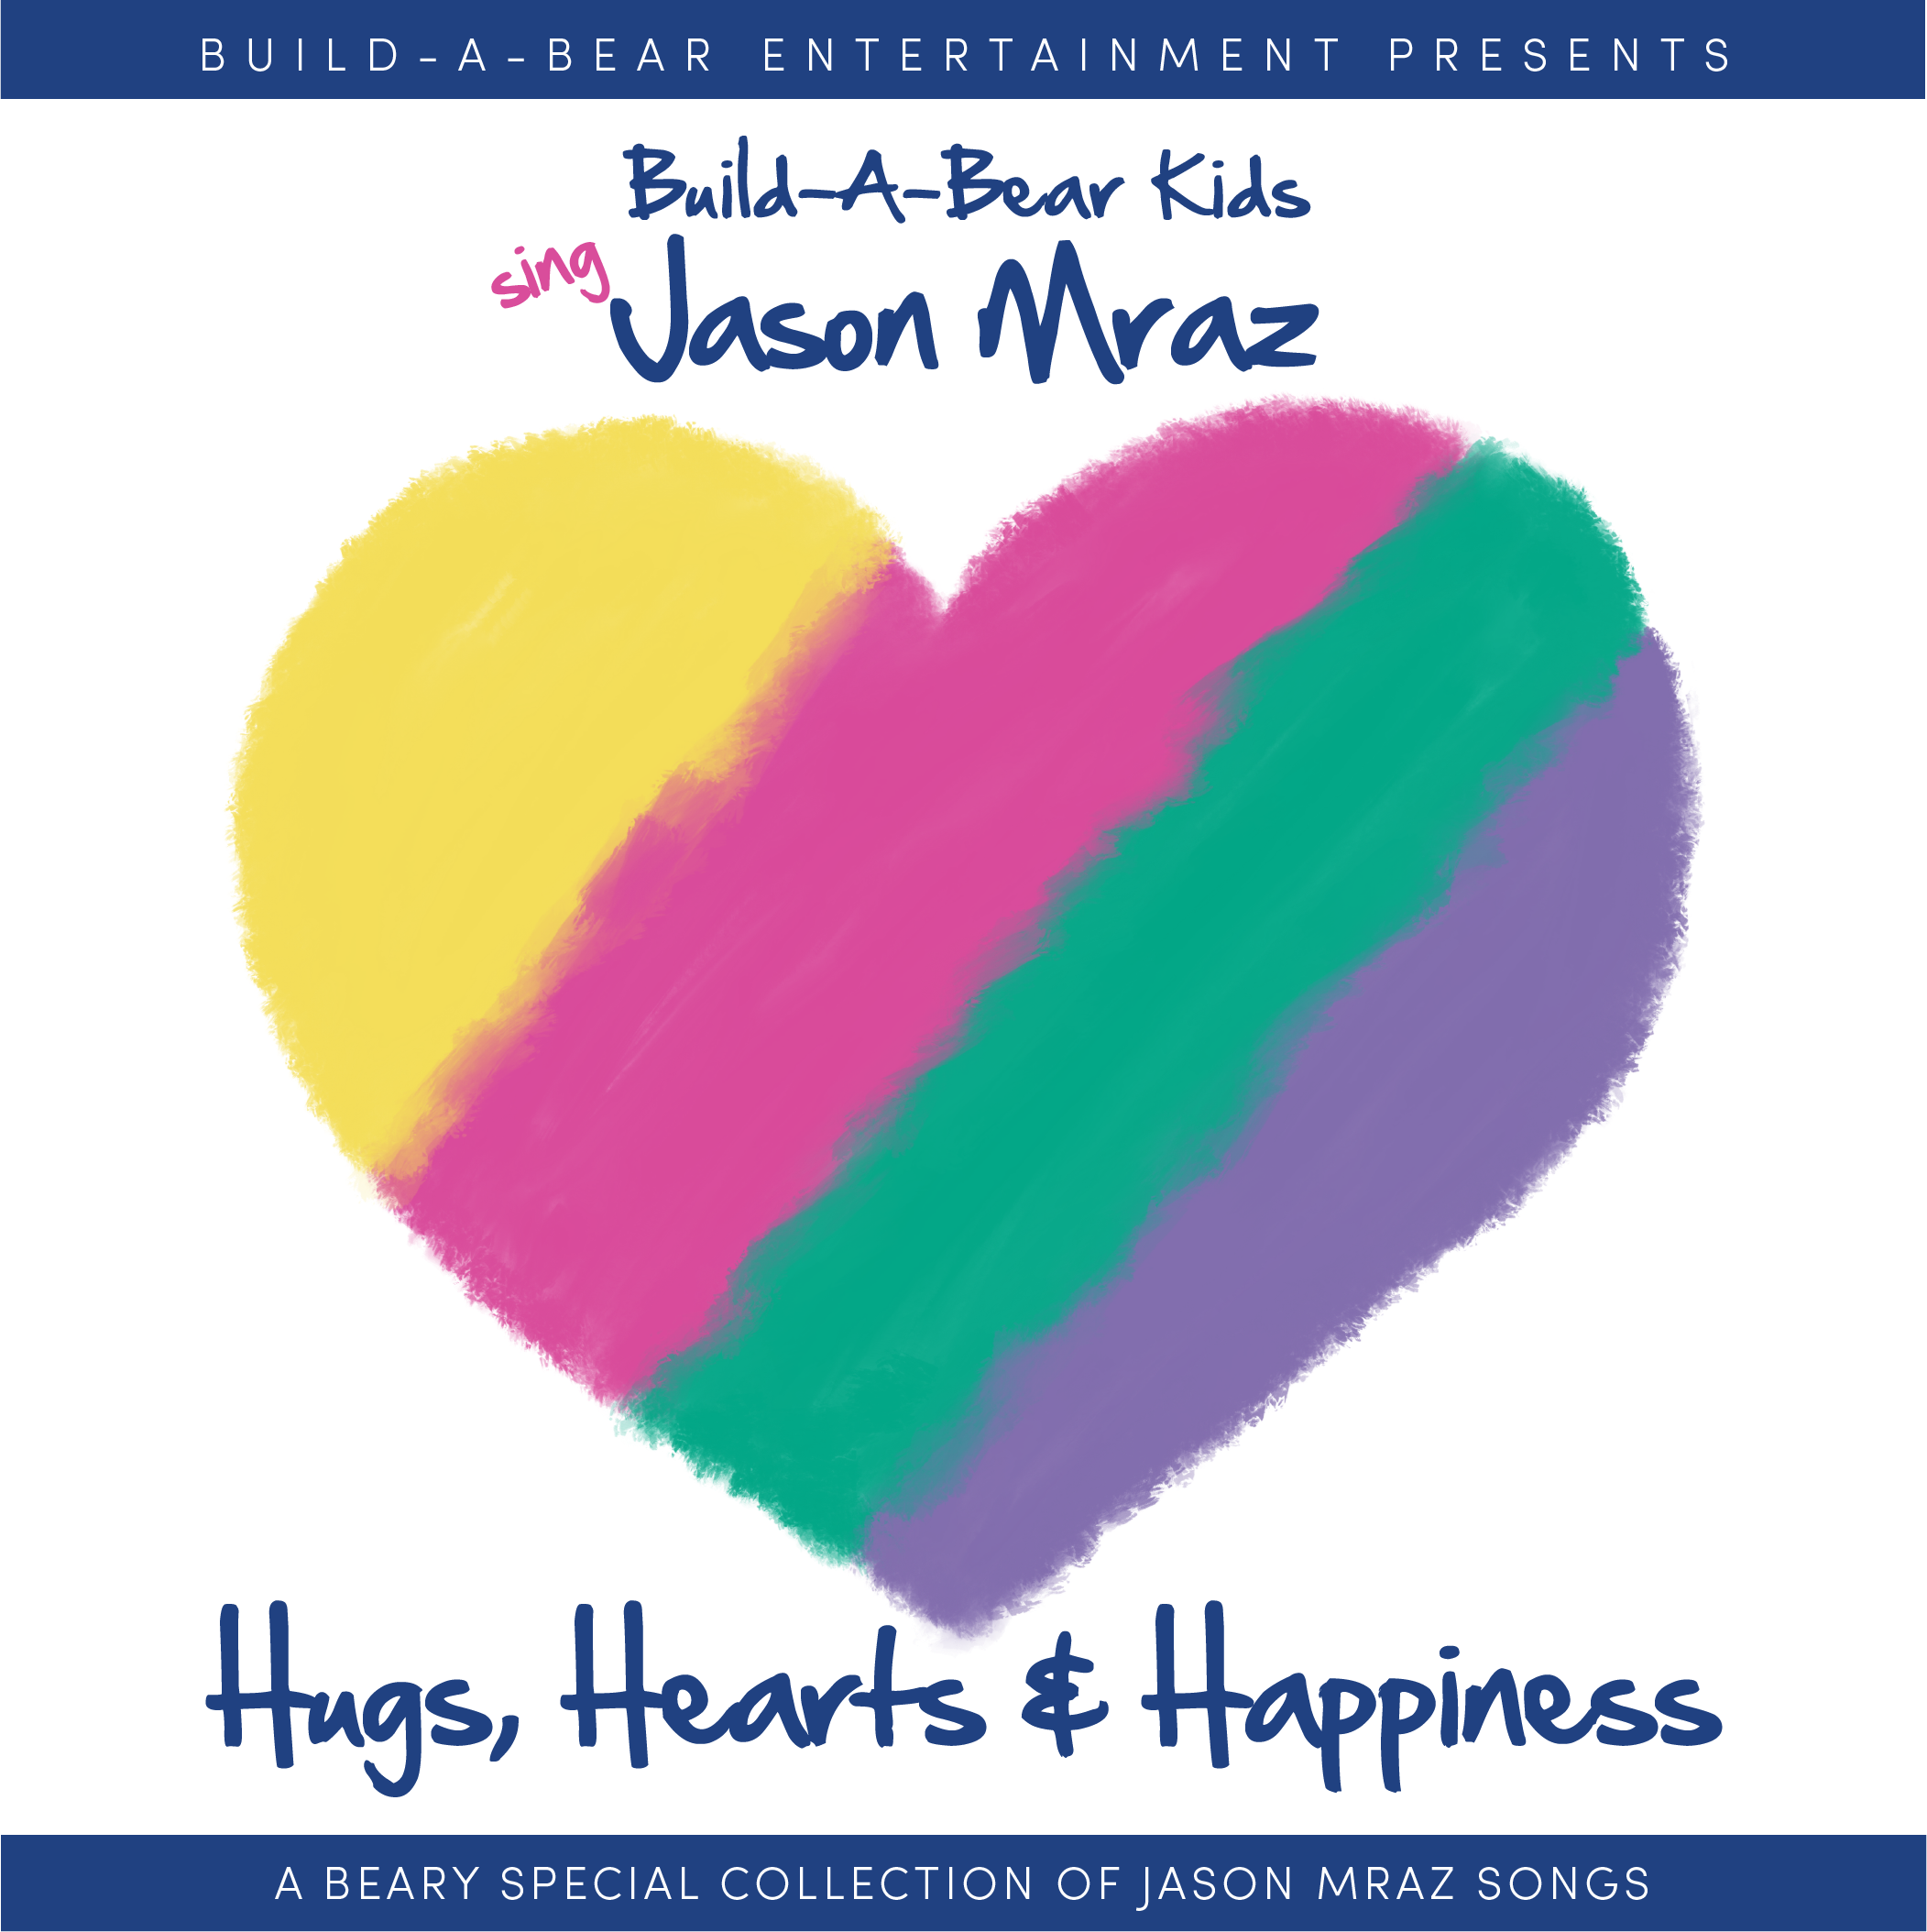 Build-A-Bear Workshop & Jason Mraz -